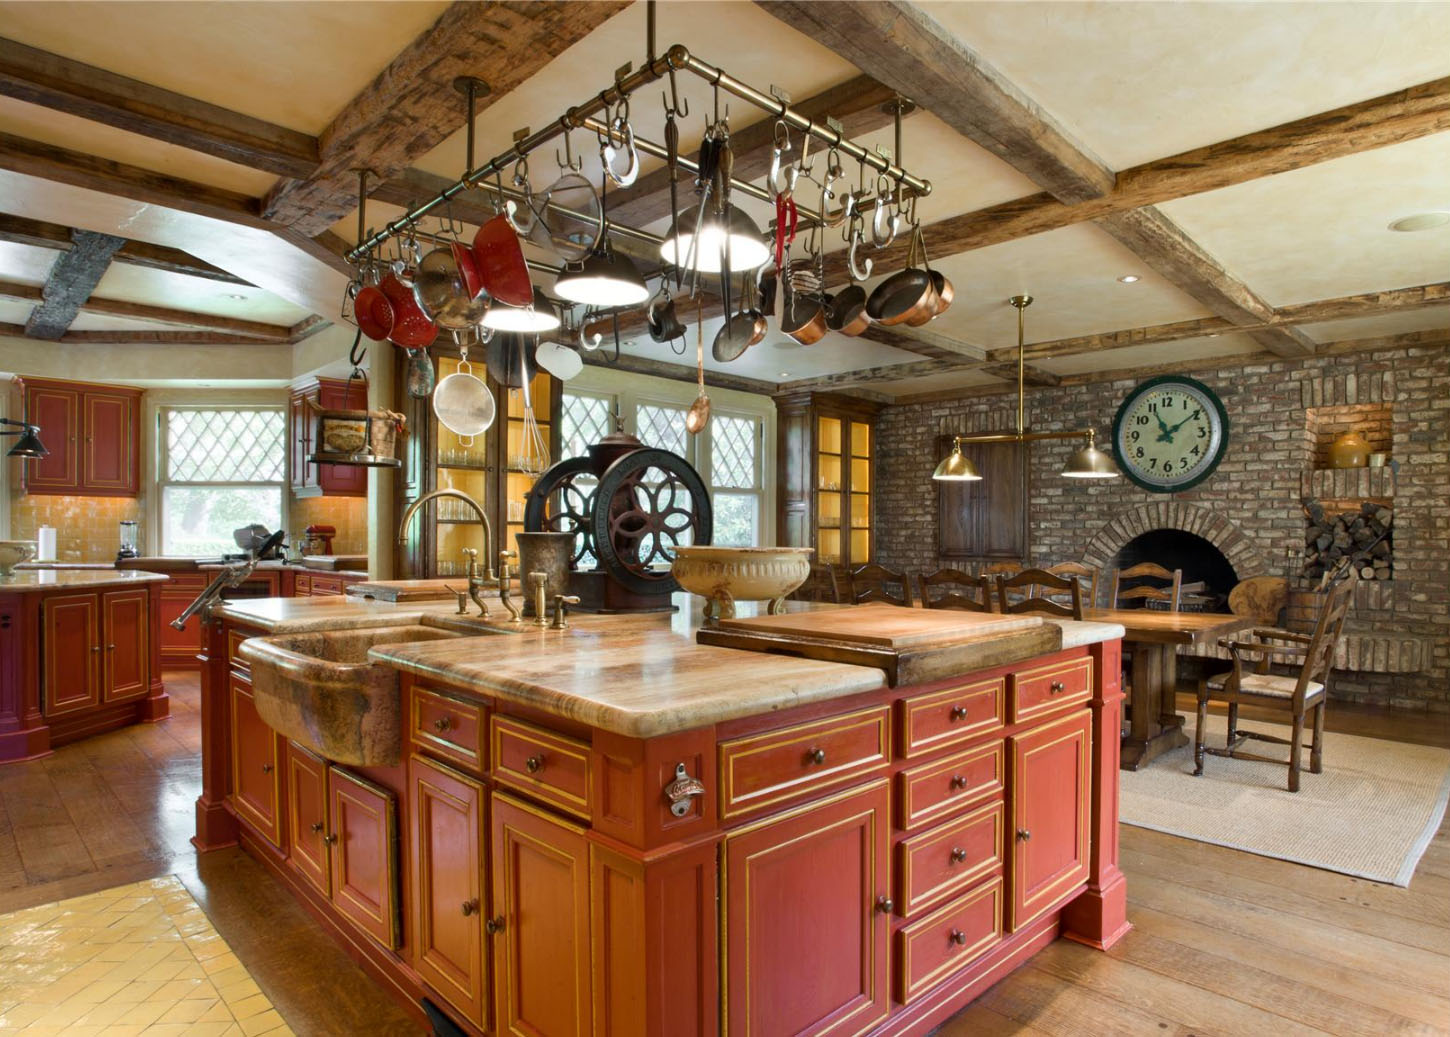 rustic kitchen island lighting copper sinks restored historical residence in southampton village ...